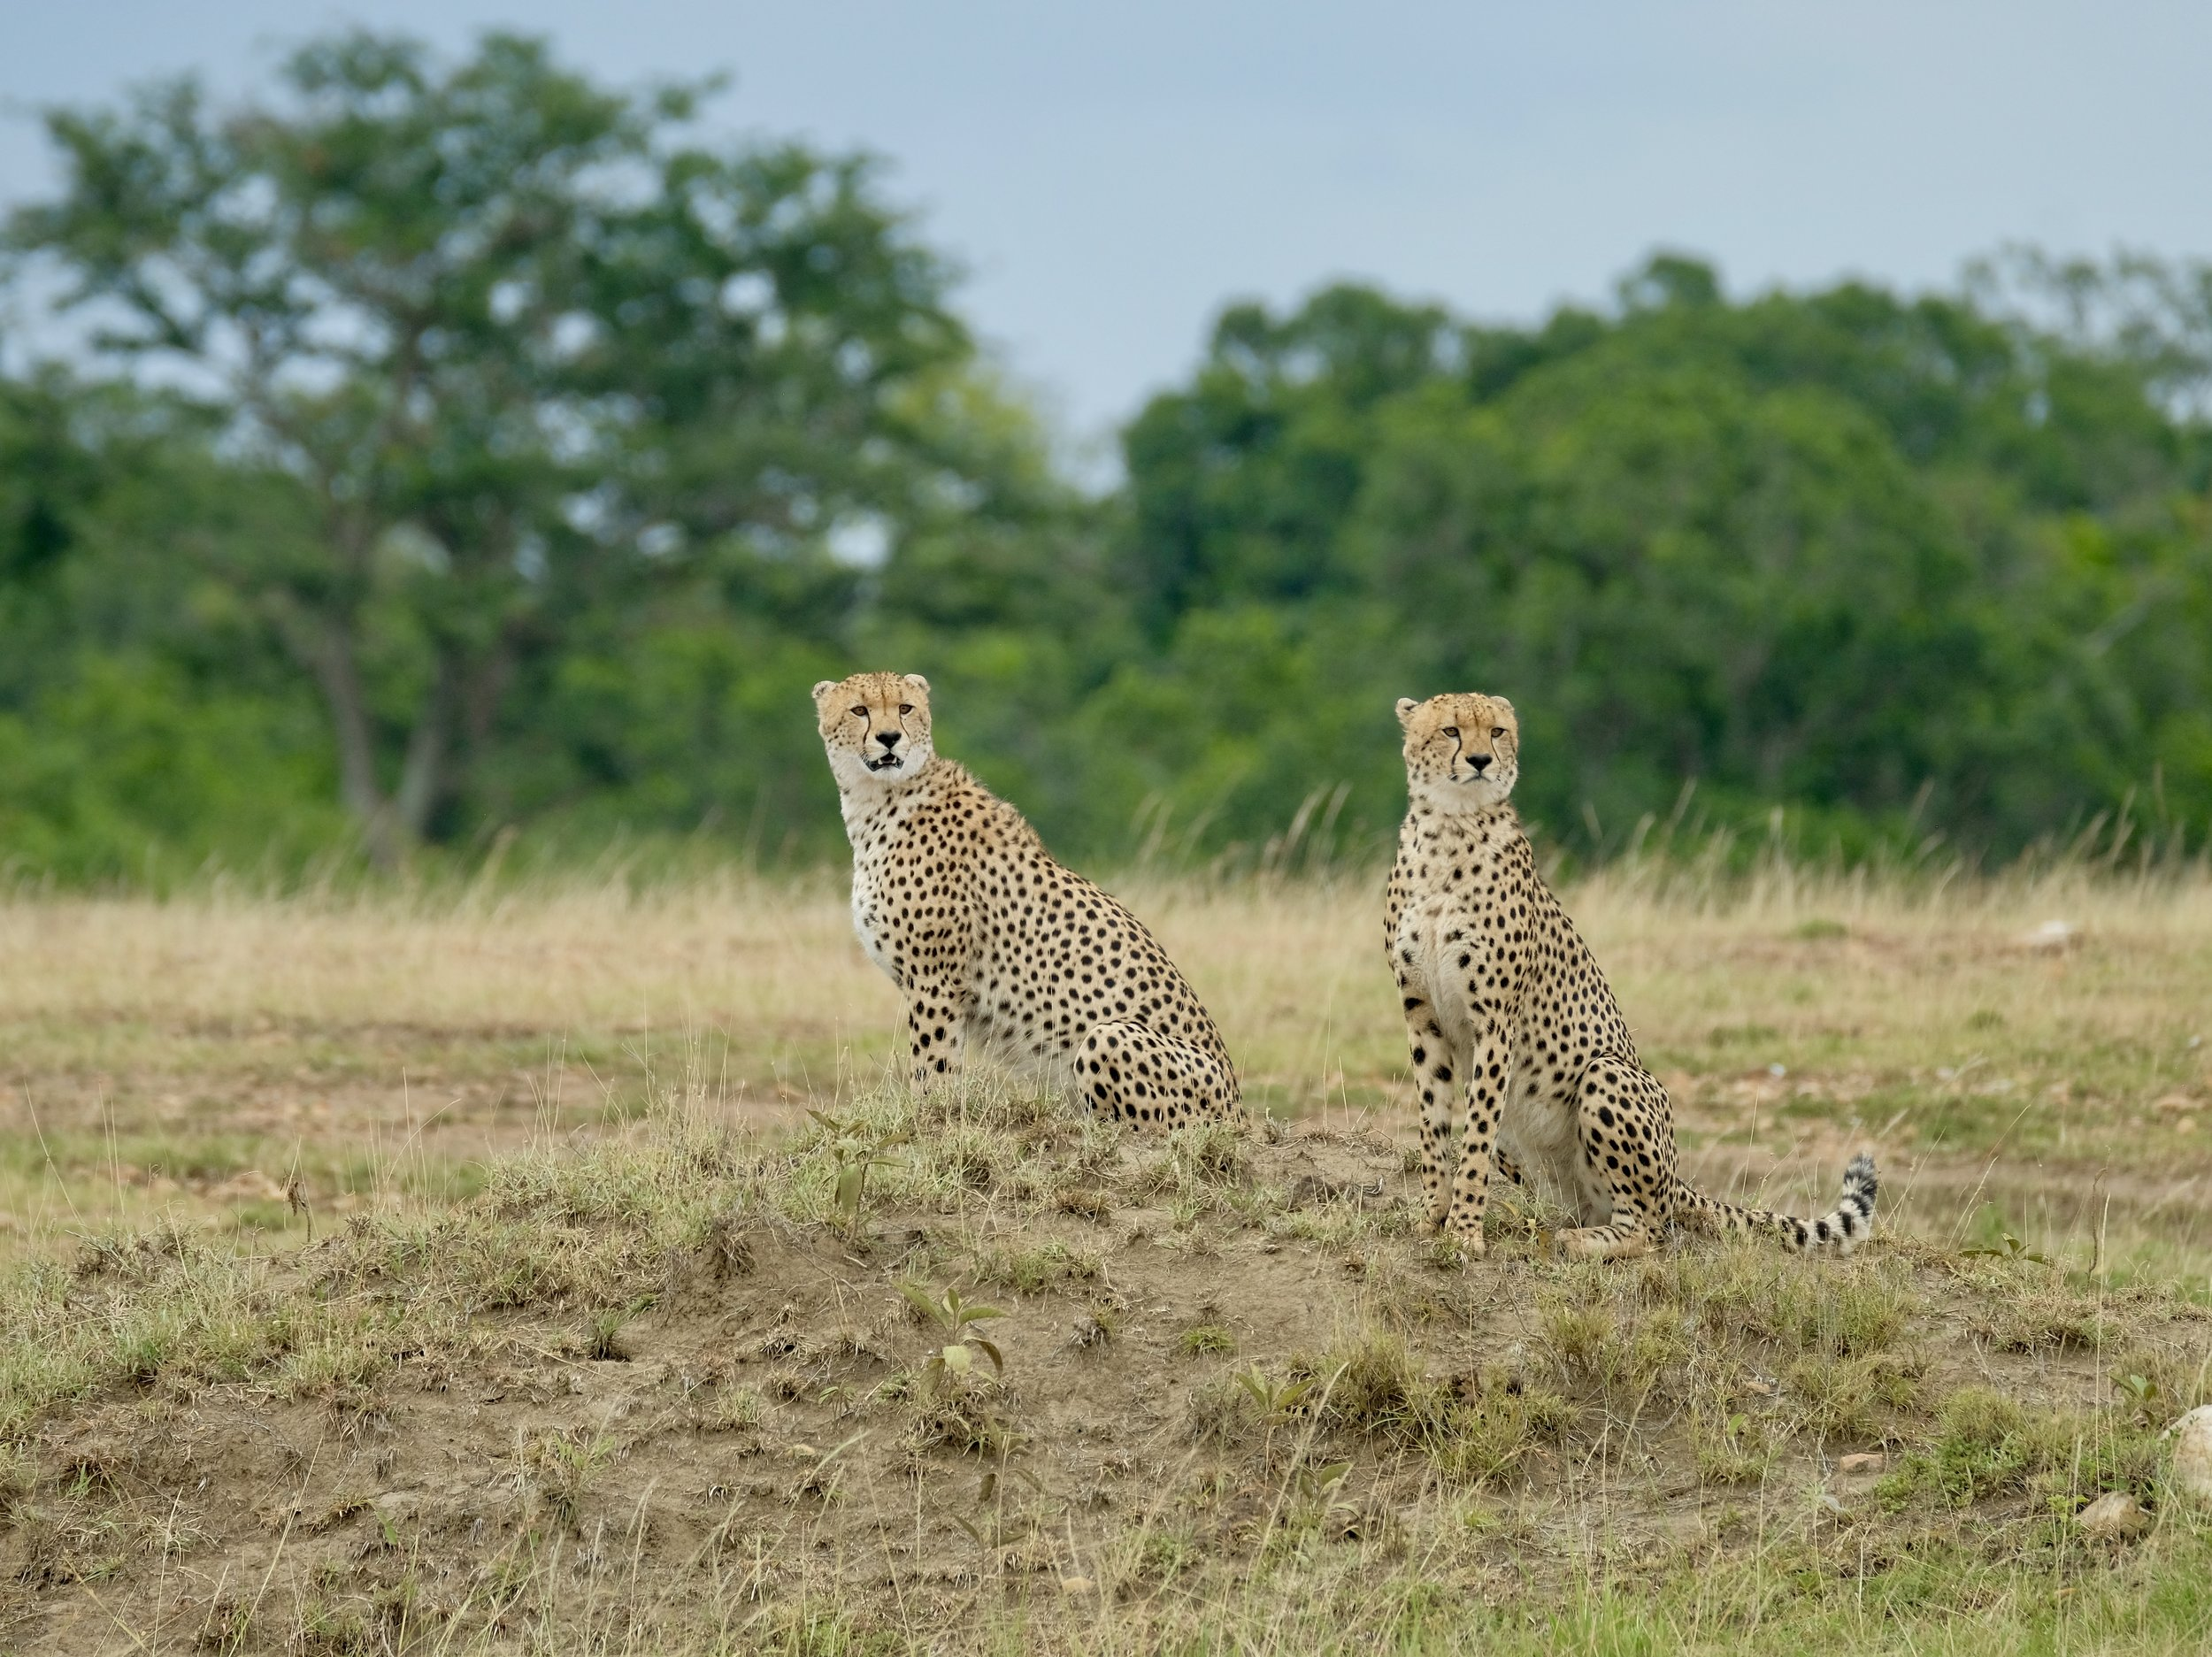 Unhappy cheetah boys calling Malika now on the other side of the river